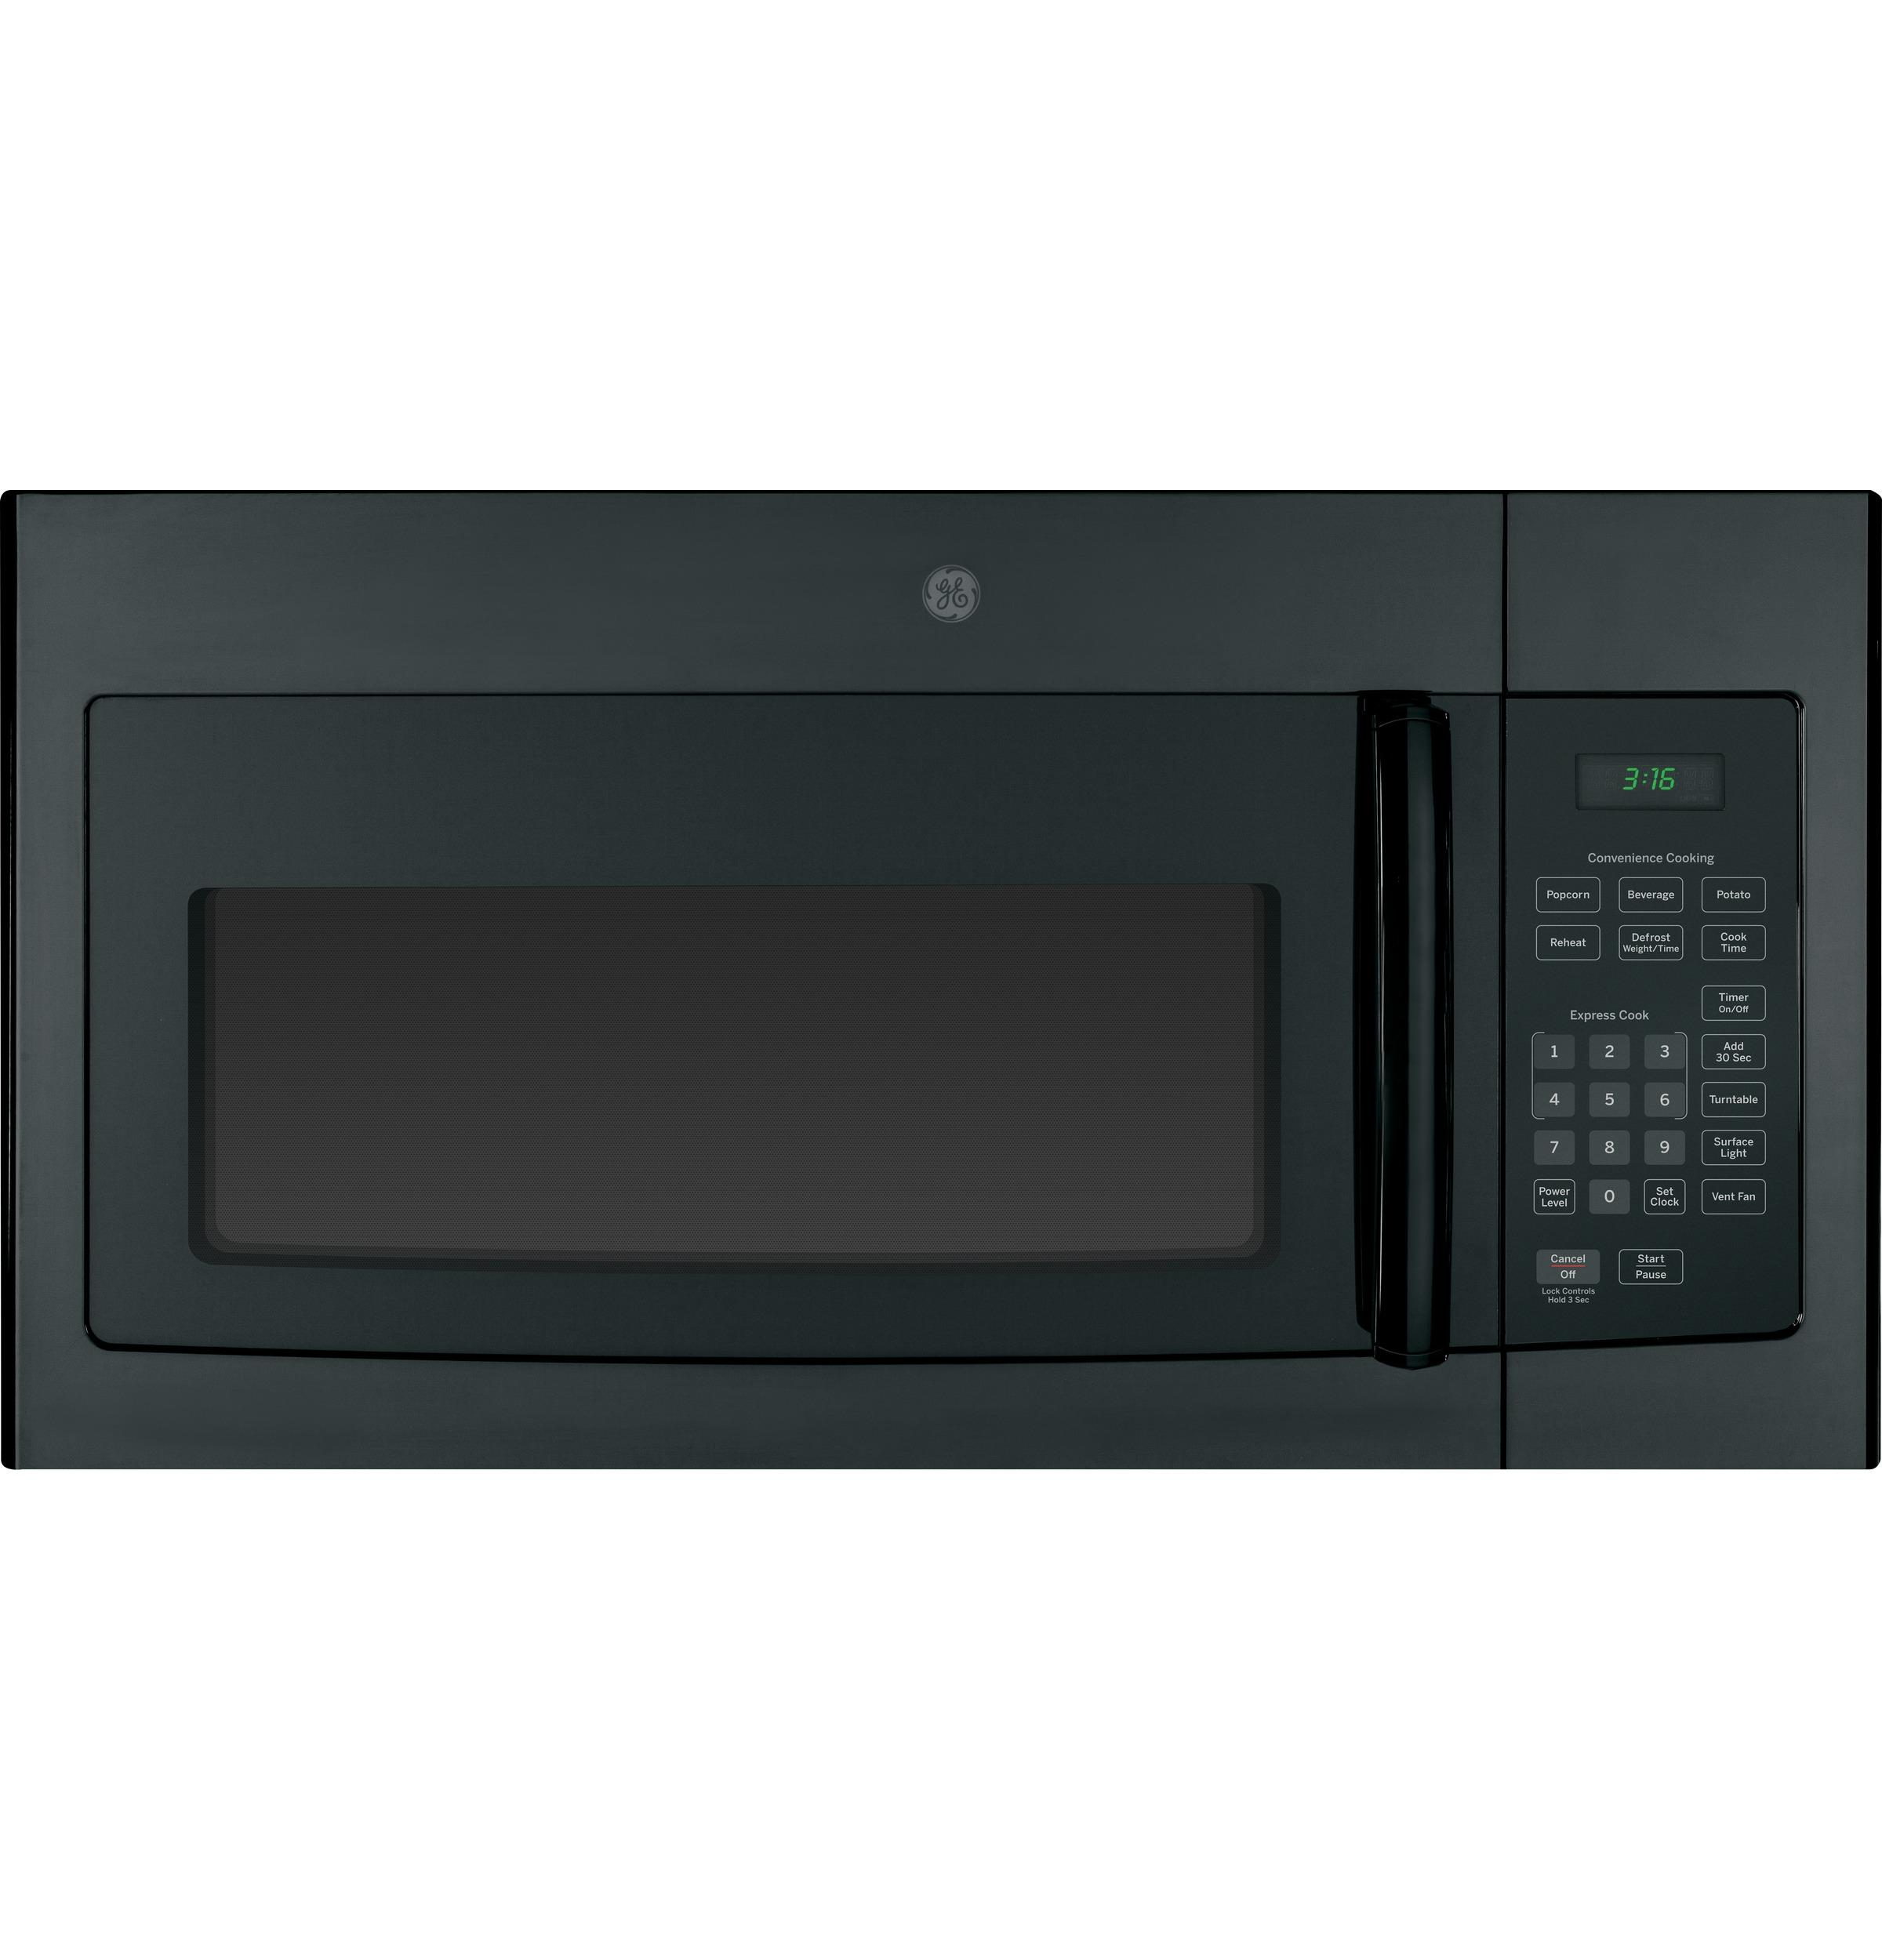 GE(R) 1.6 Cu. Ft. Over-the-Range Microwave Oven